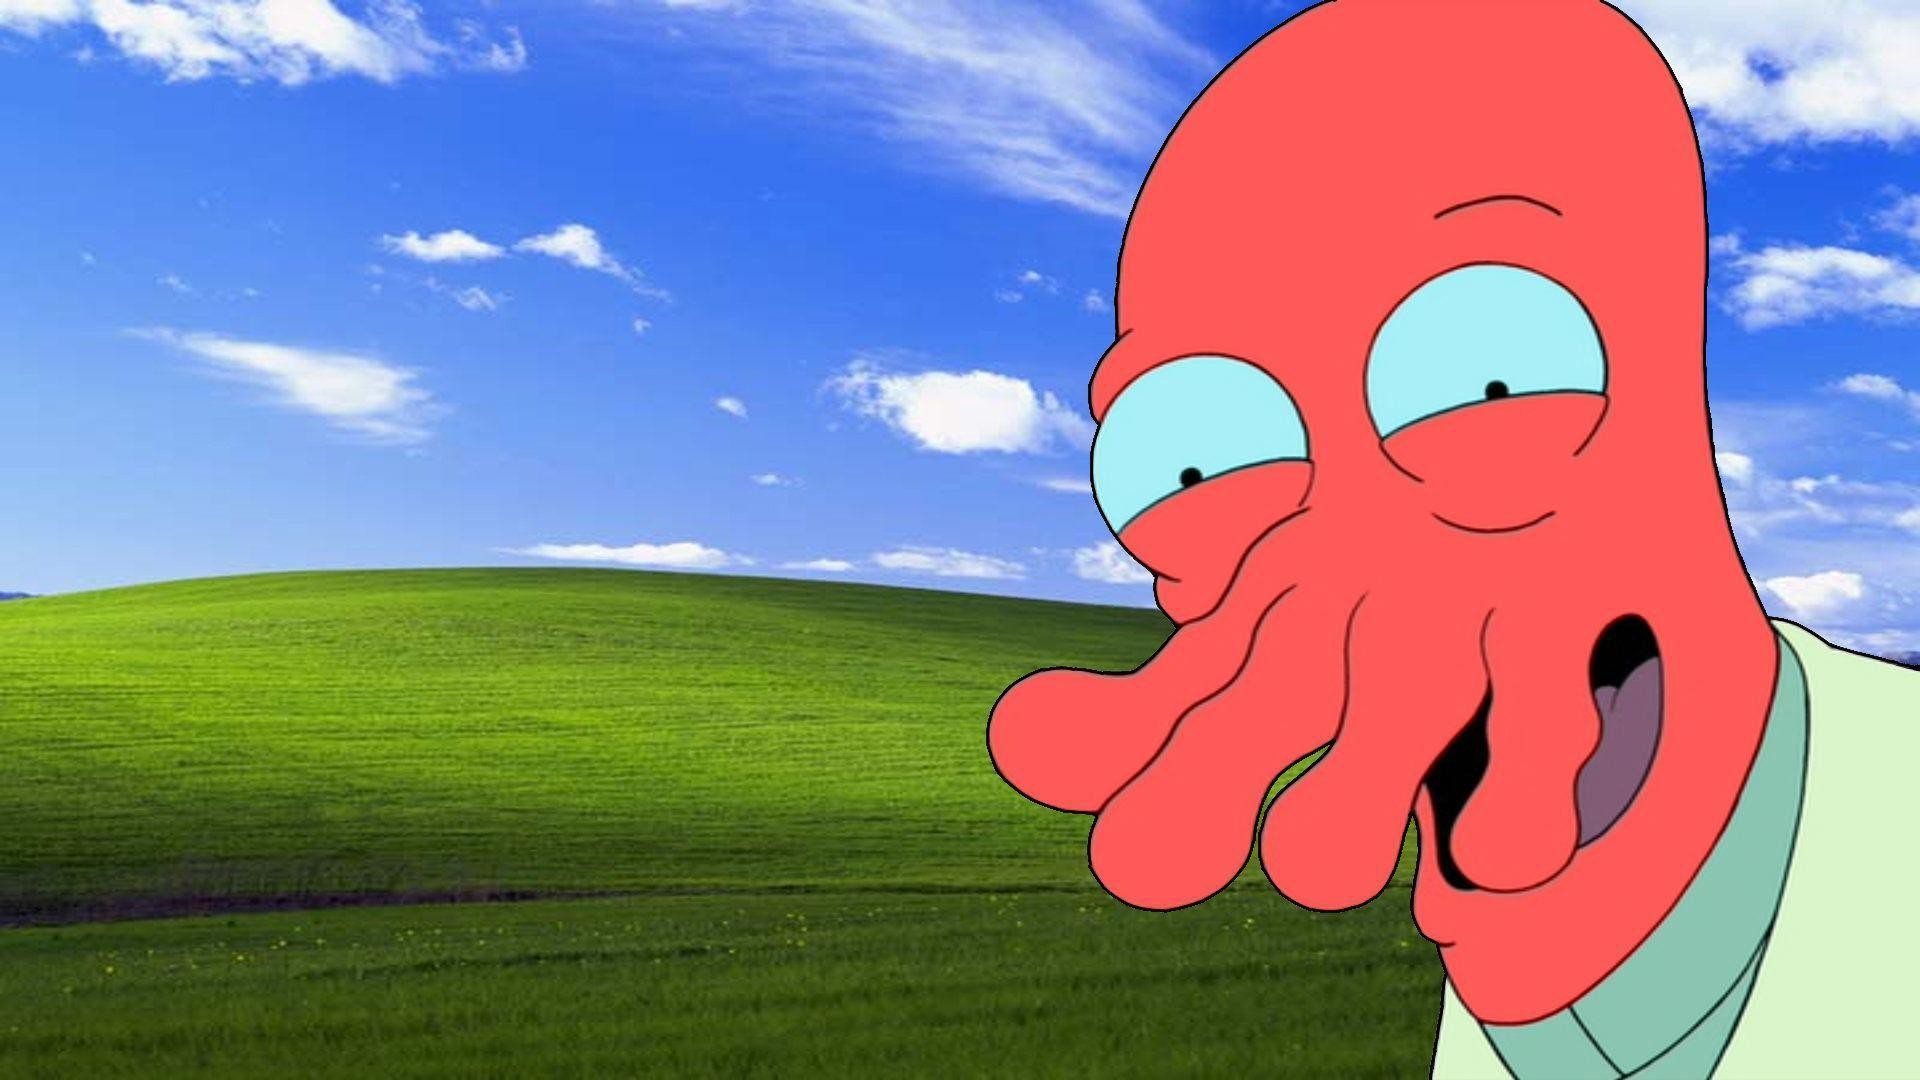 Horror Hd Wallpapers 1366x768 Dr Zoidberg Wallpaper 65 Images